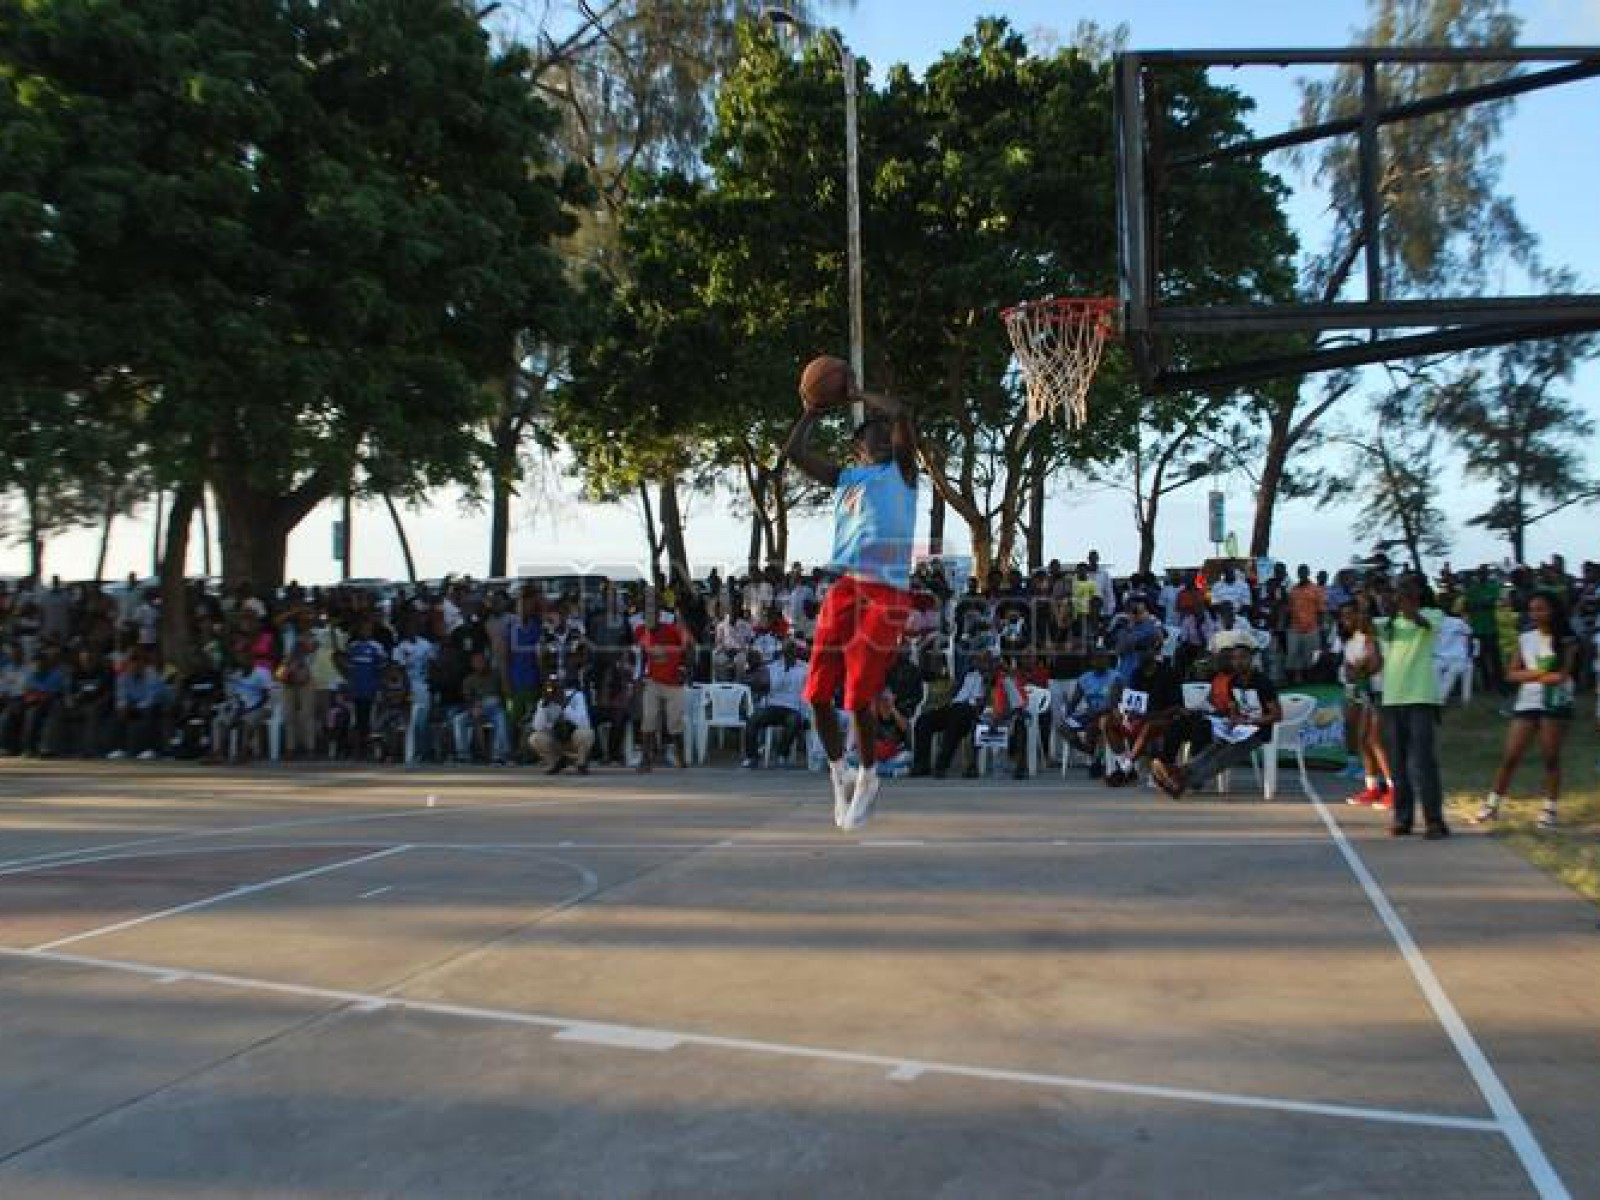 Spiders Basketball Grounds, Dar Es Salaam, Tanzania